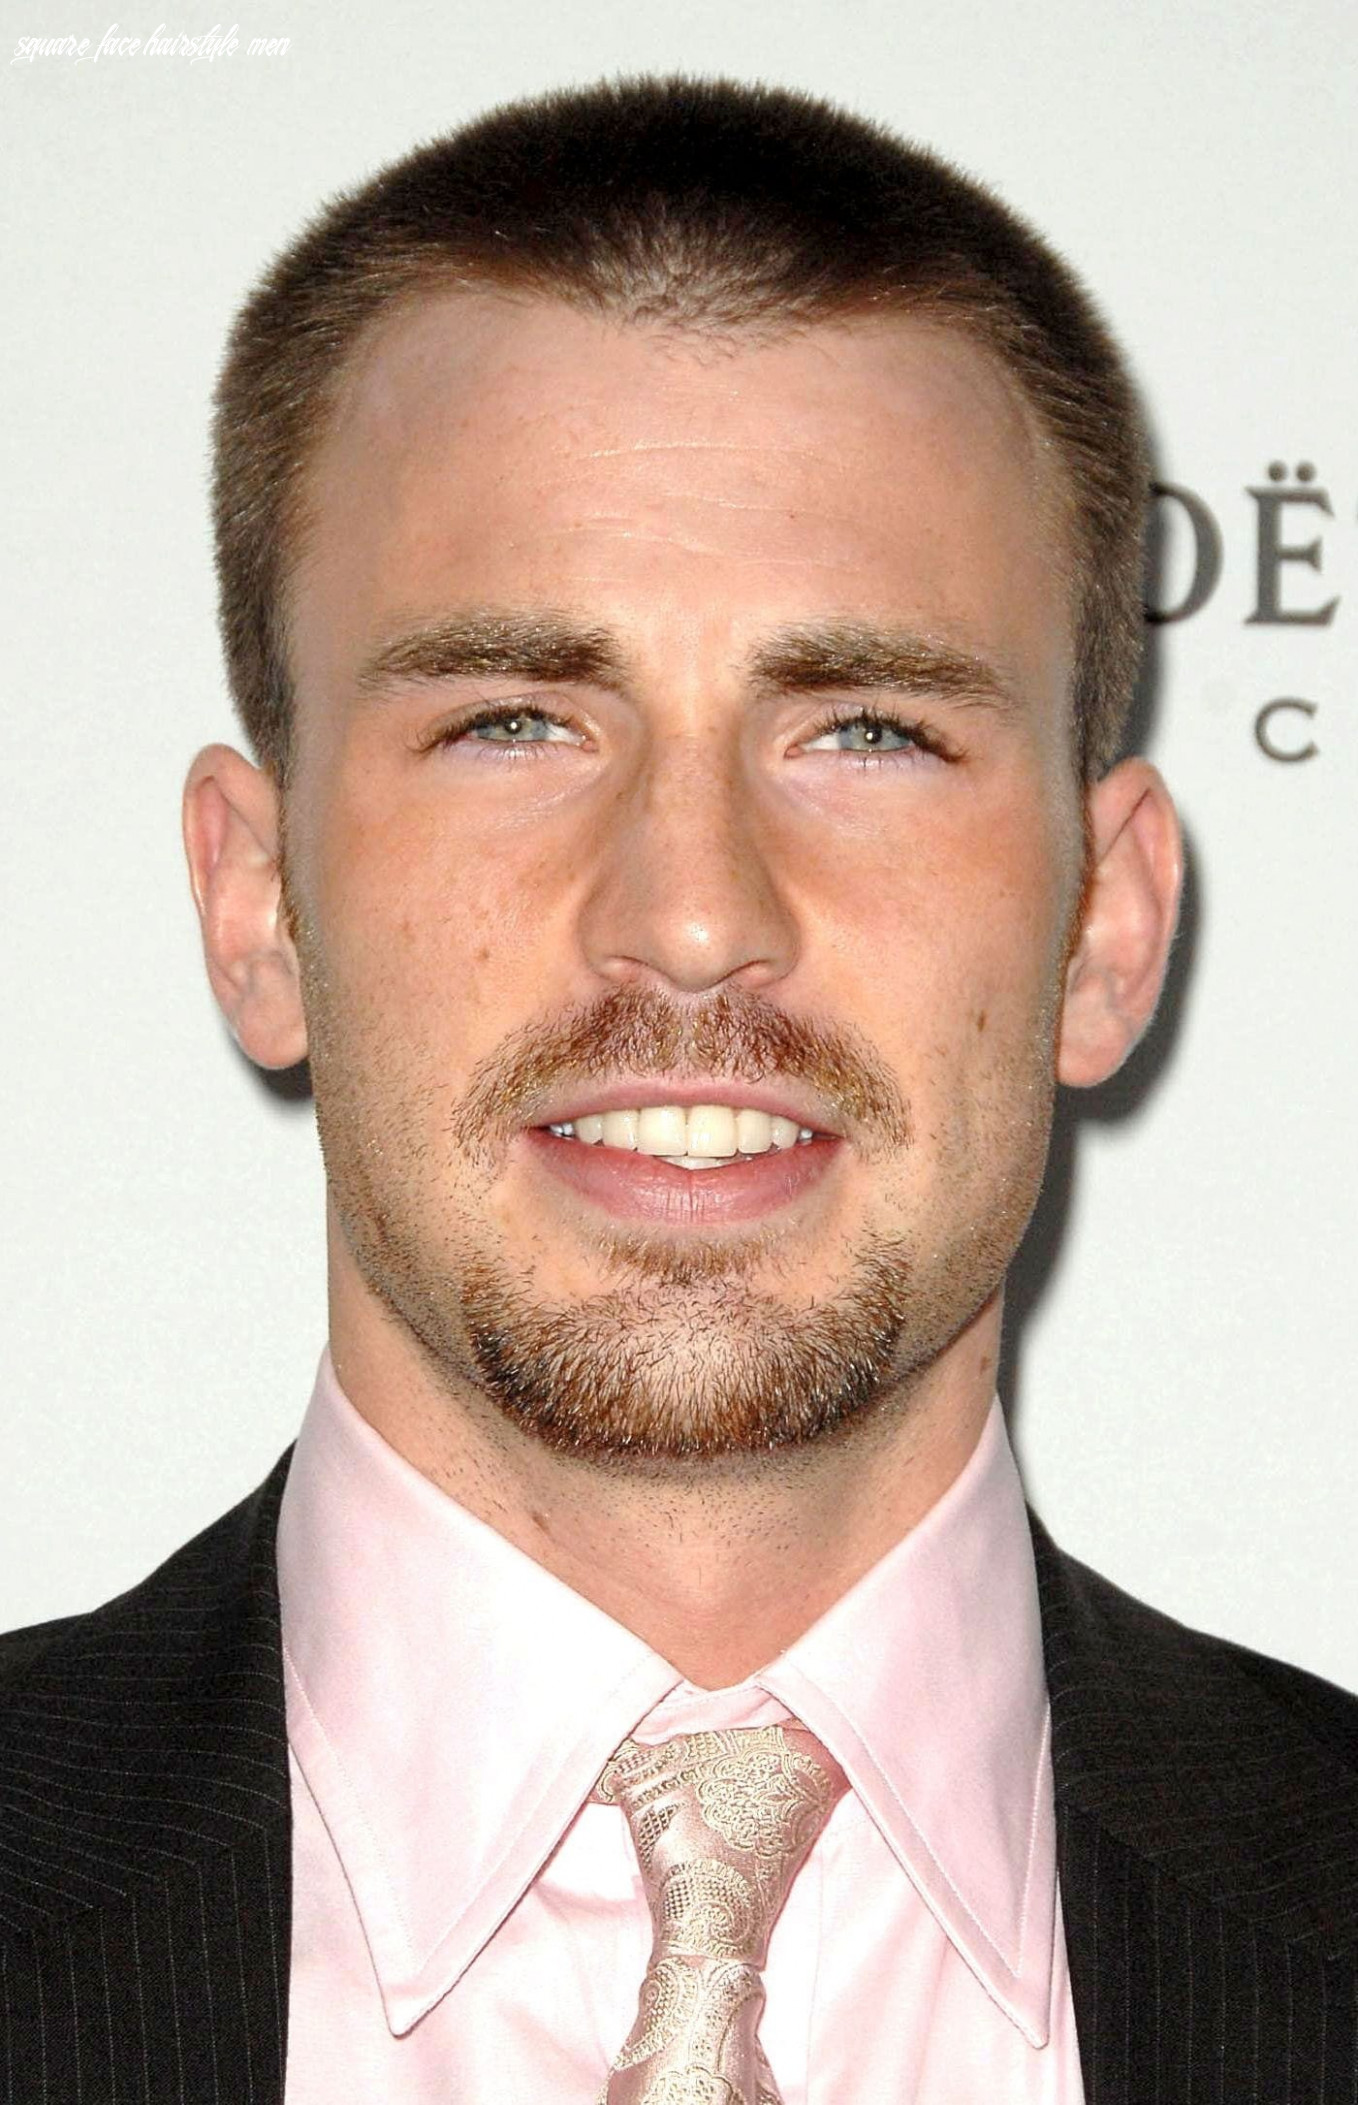 Top 8 Elegant Haircuts for Guys With Square Faces